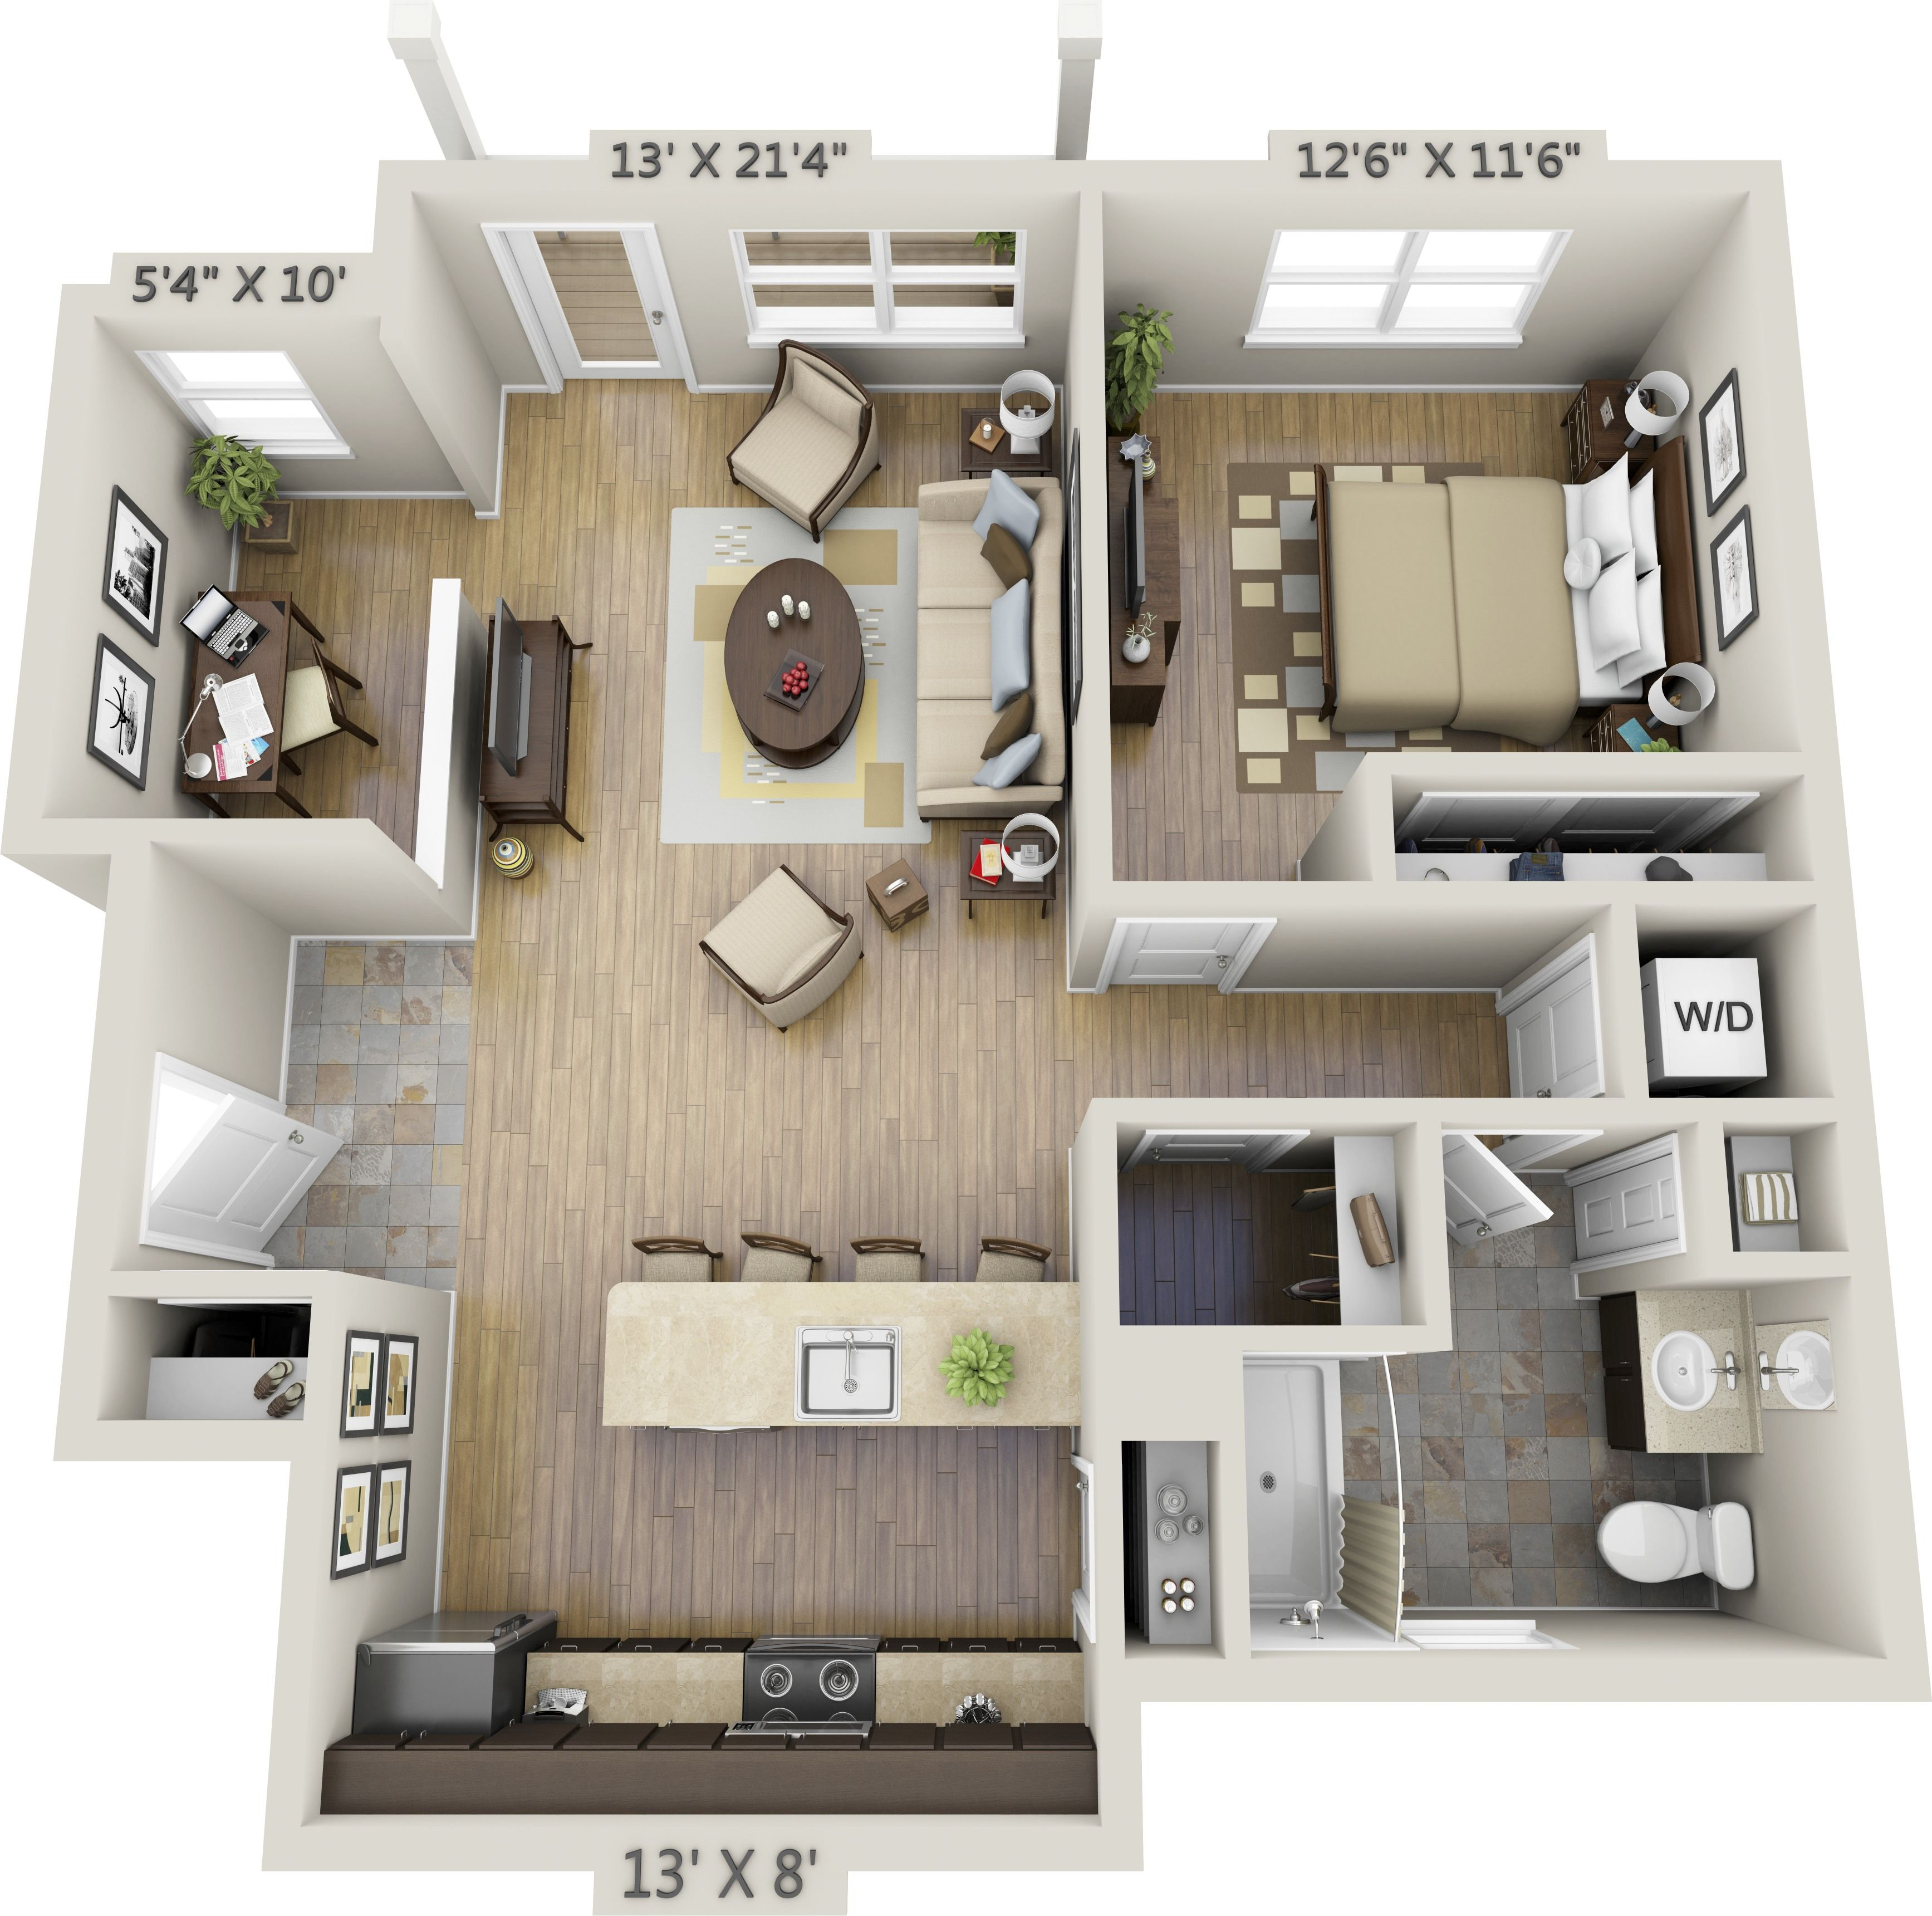 3 Bedroom Apartments Zillow: Cool 3D Ein Zimmer Wohnung